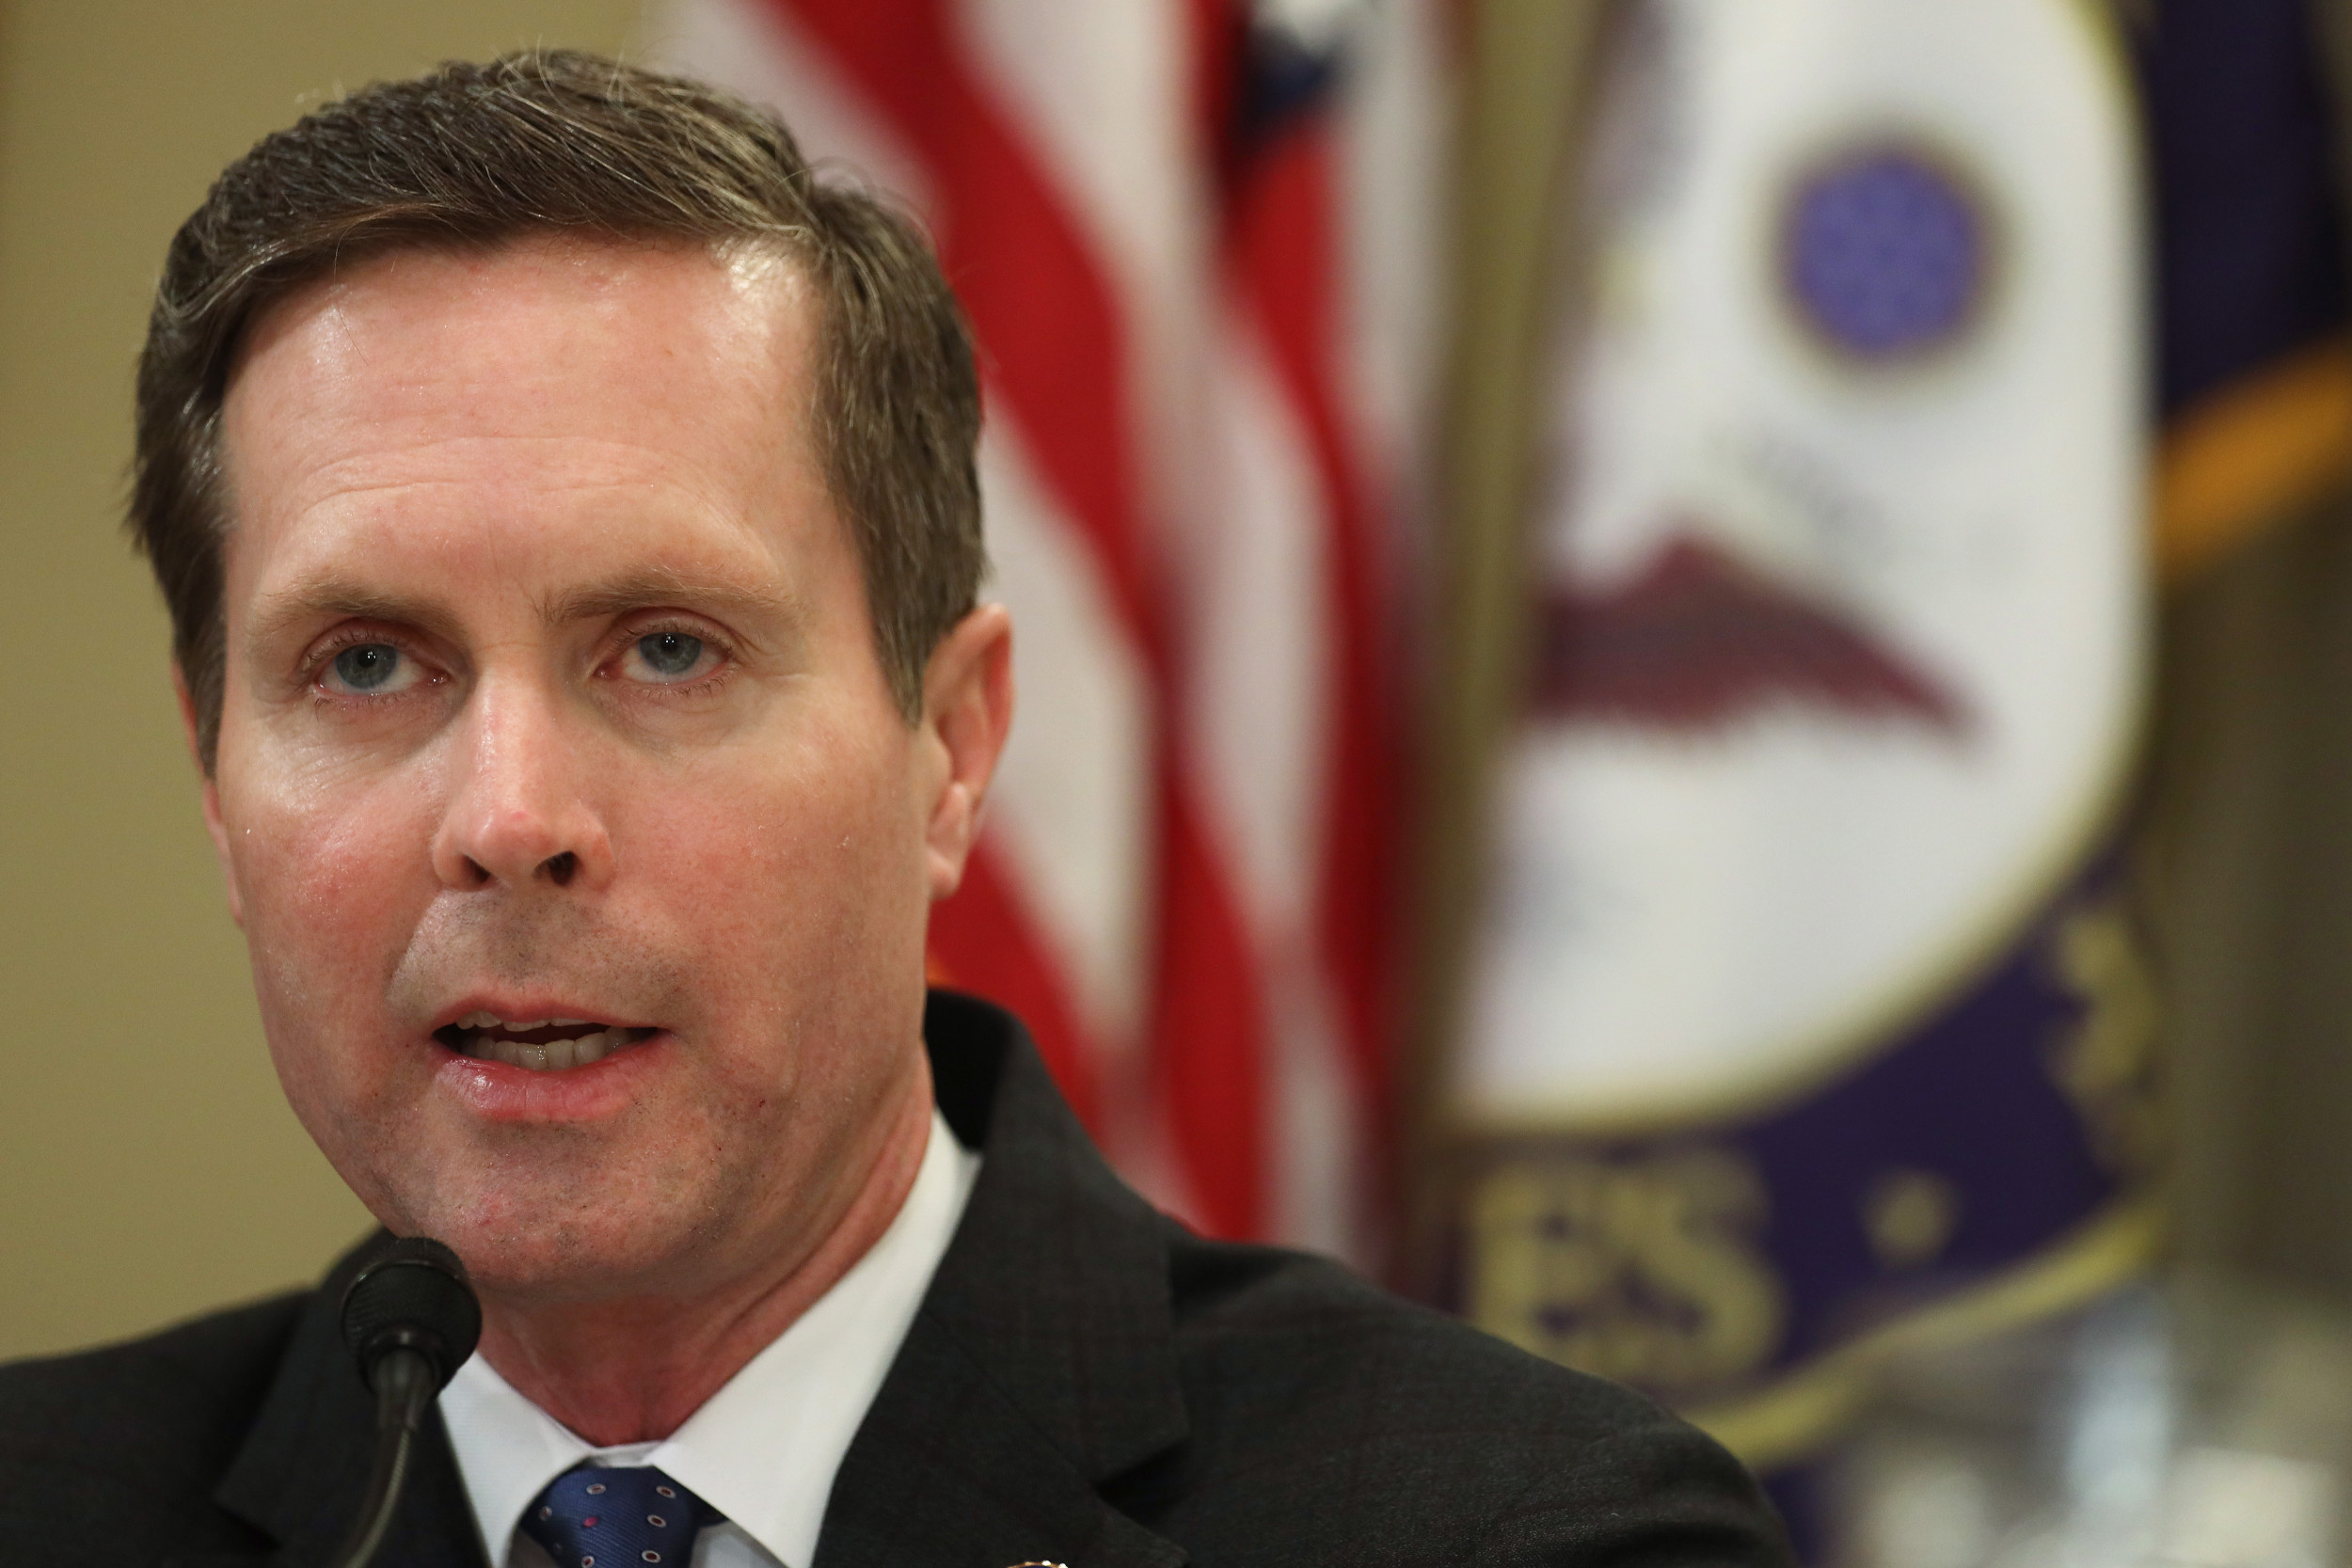 Illinois Rep. Rodney Davis tests positive for coronavirus